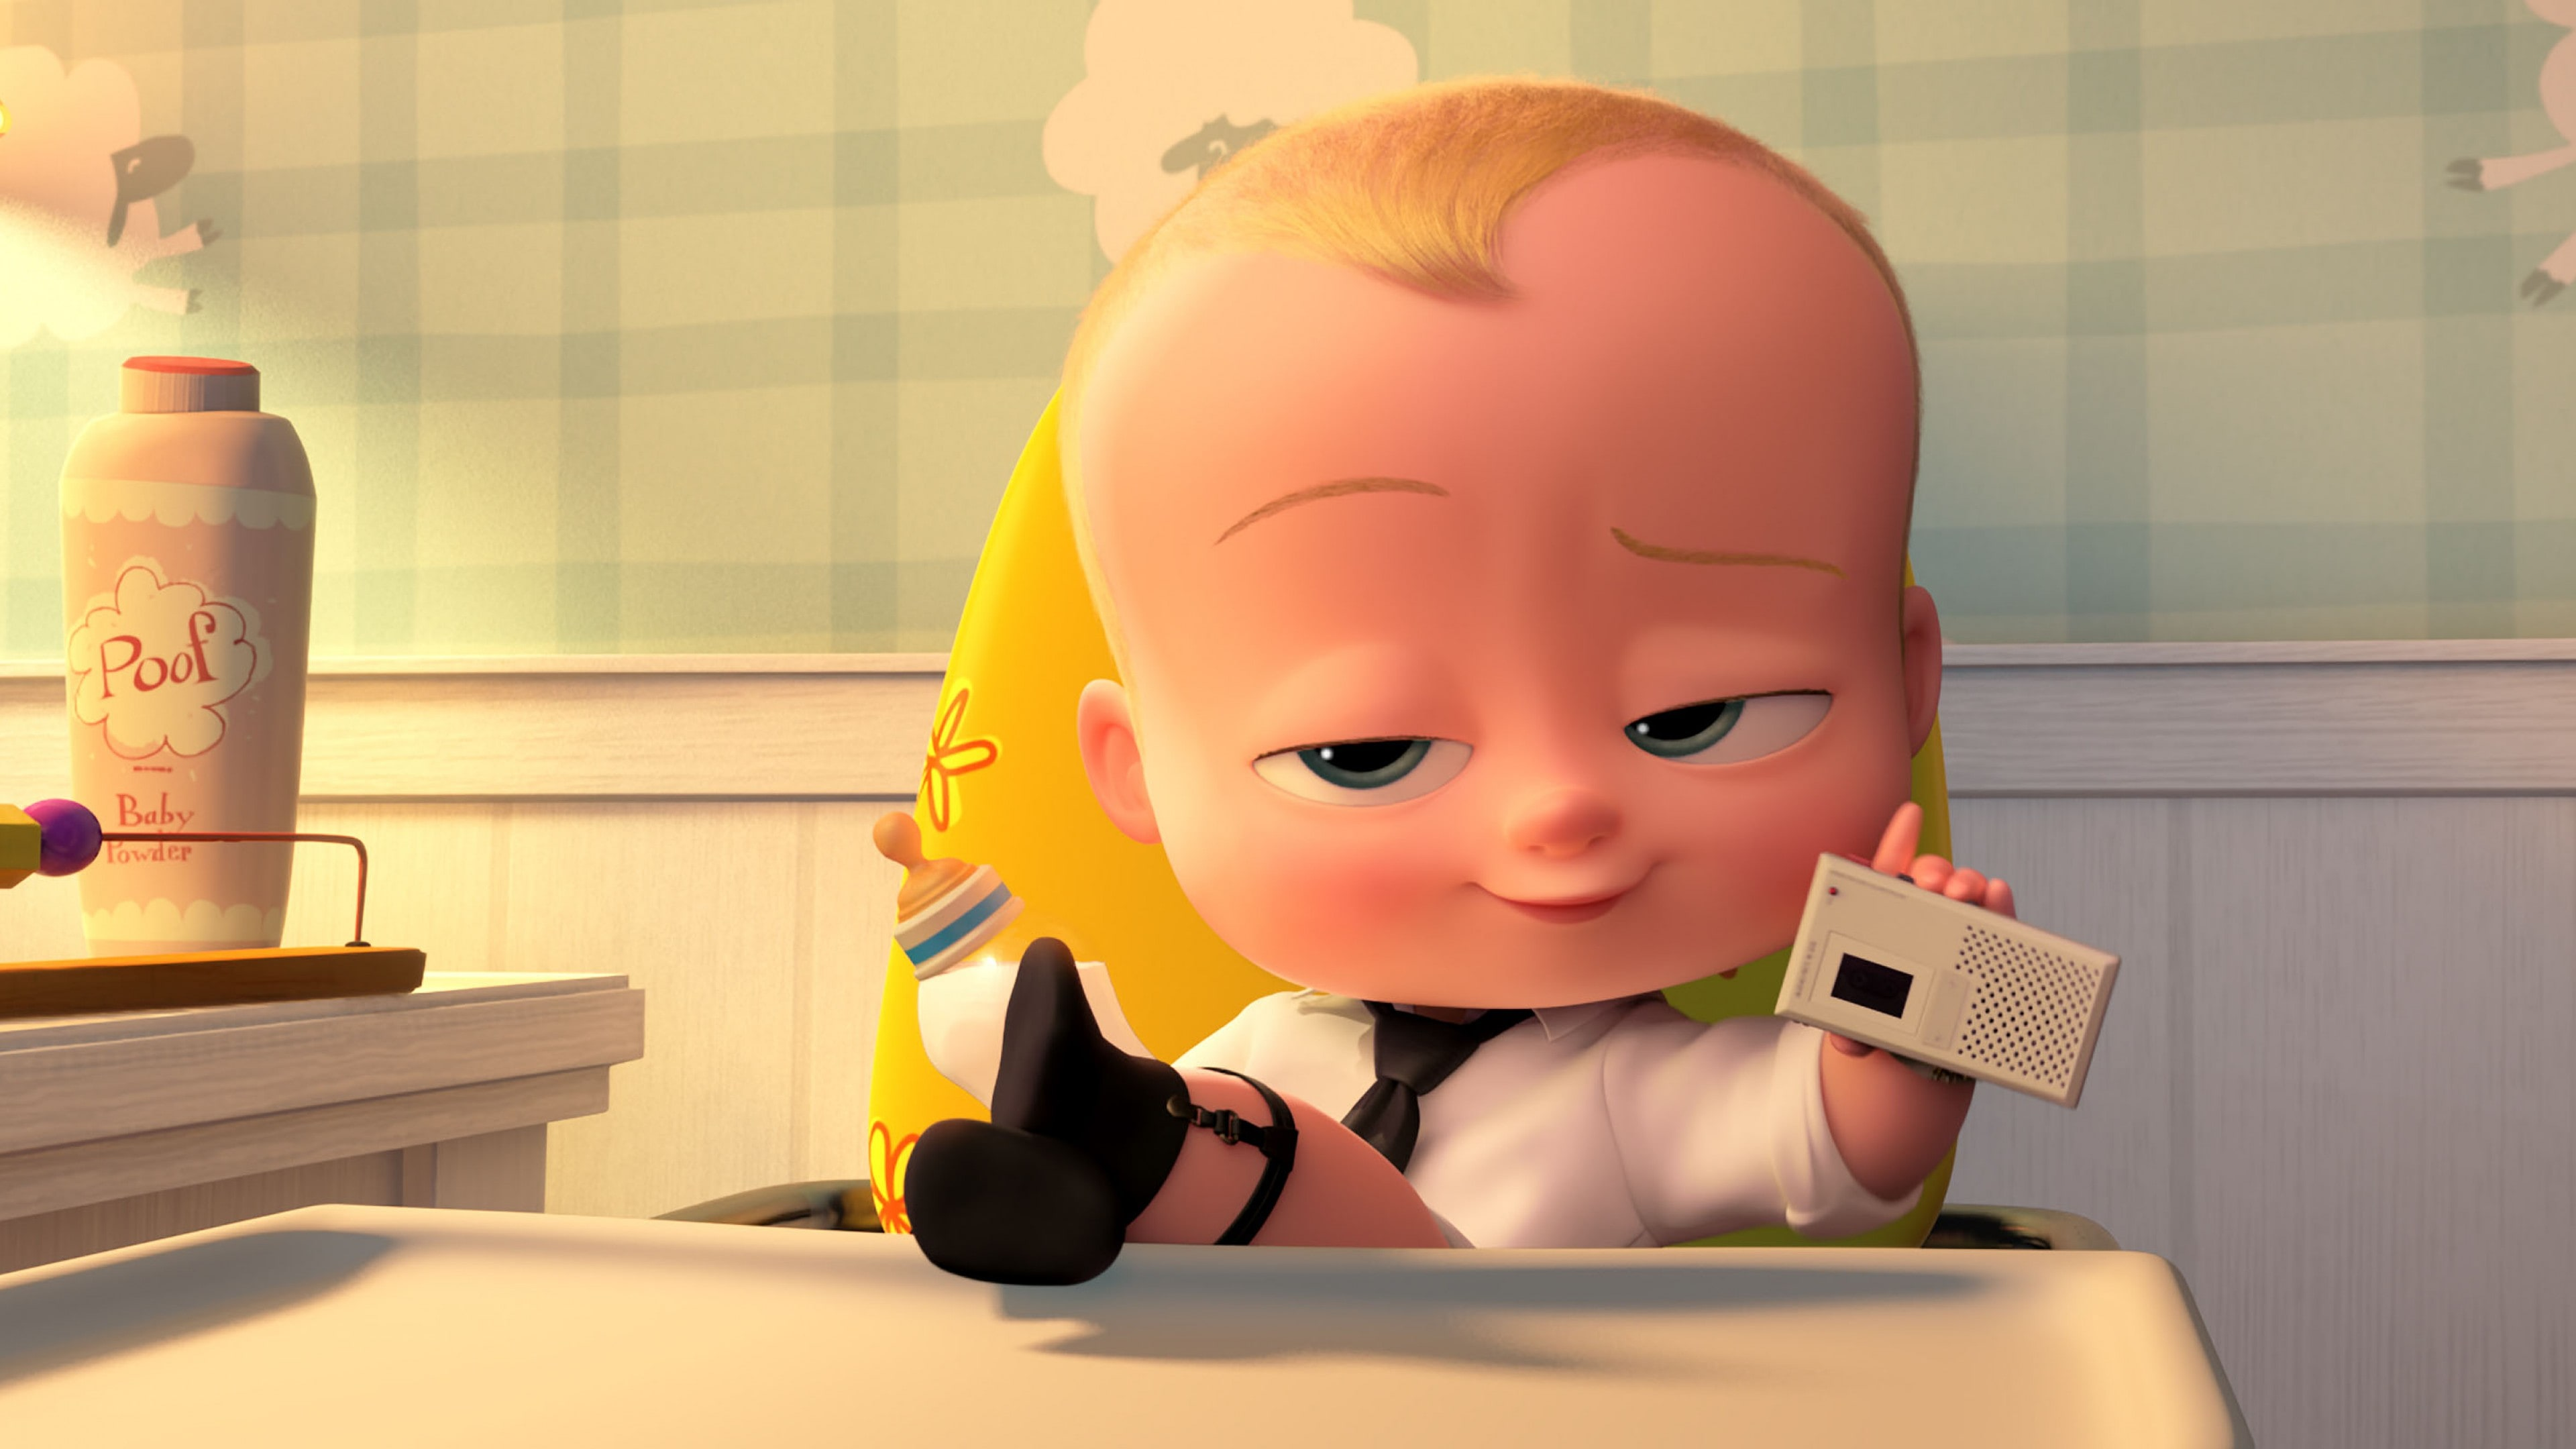 The Boss Baby Desktop wallpaper